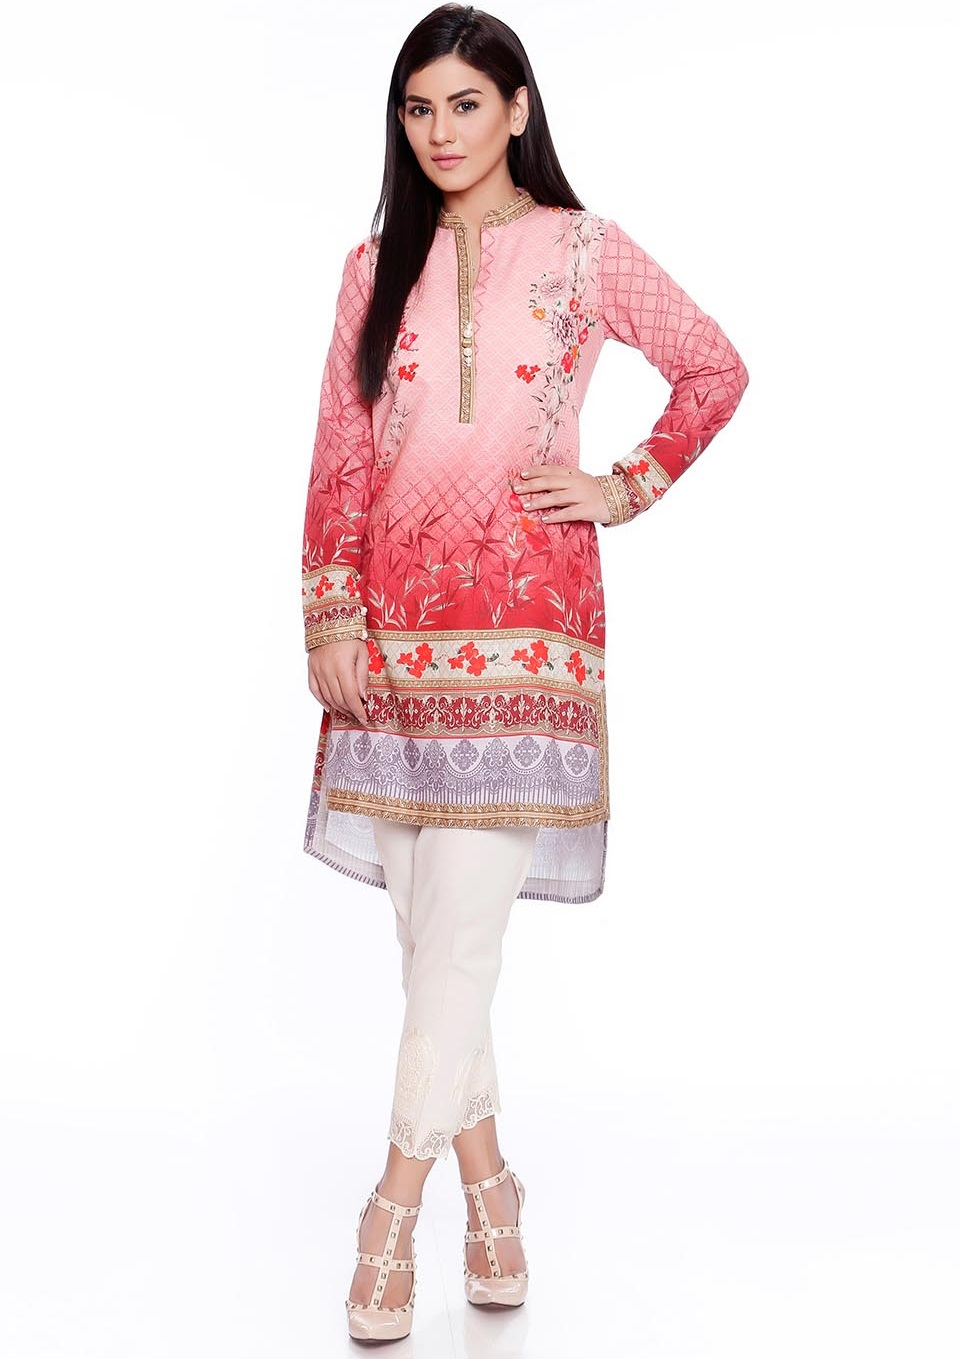 SO kamal winter two piece karandi suit in pink color